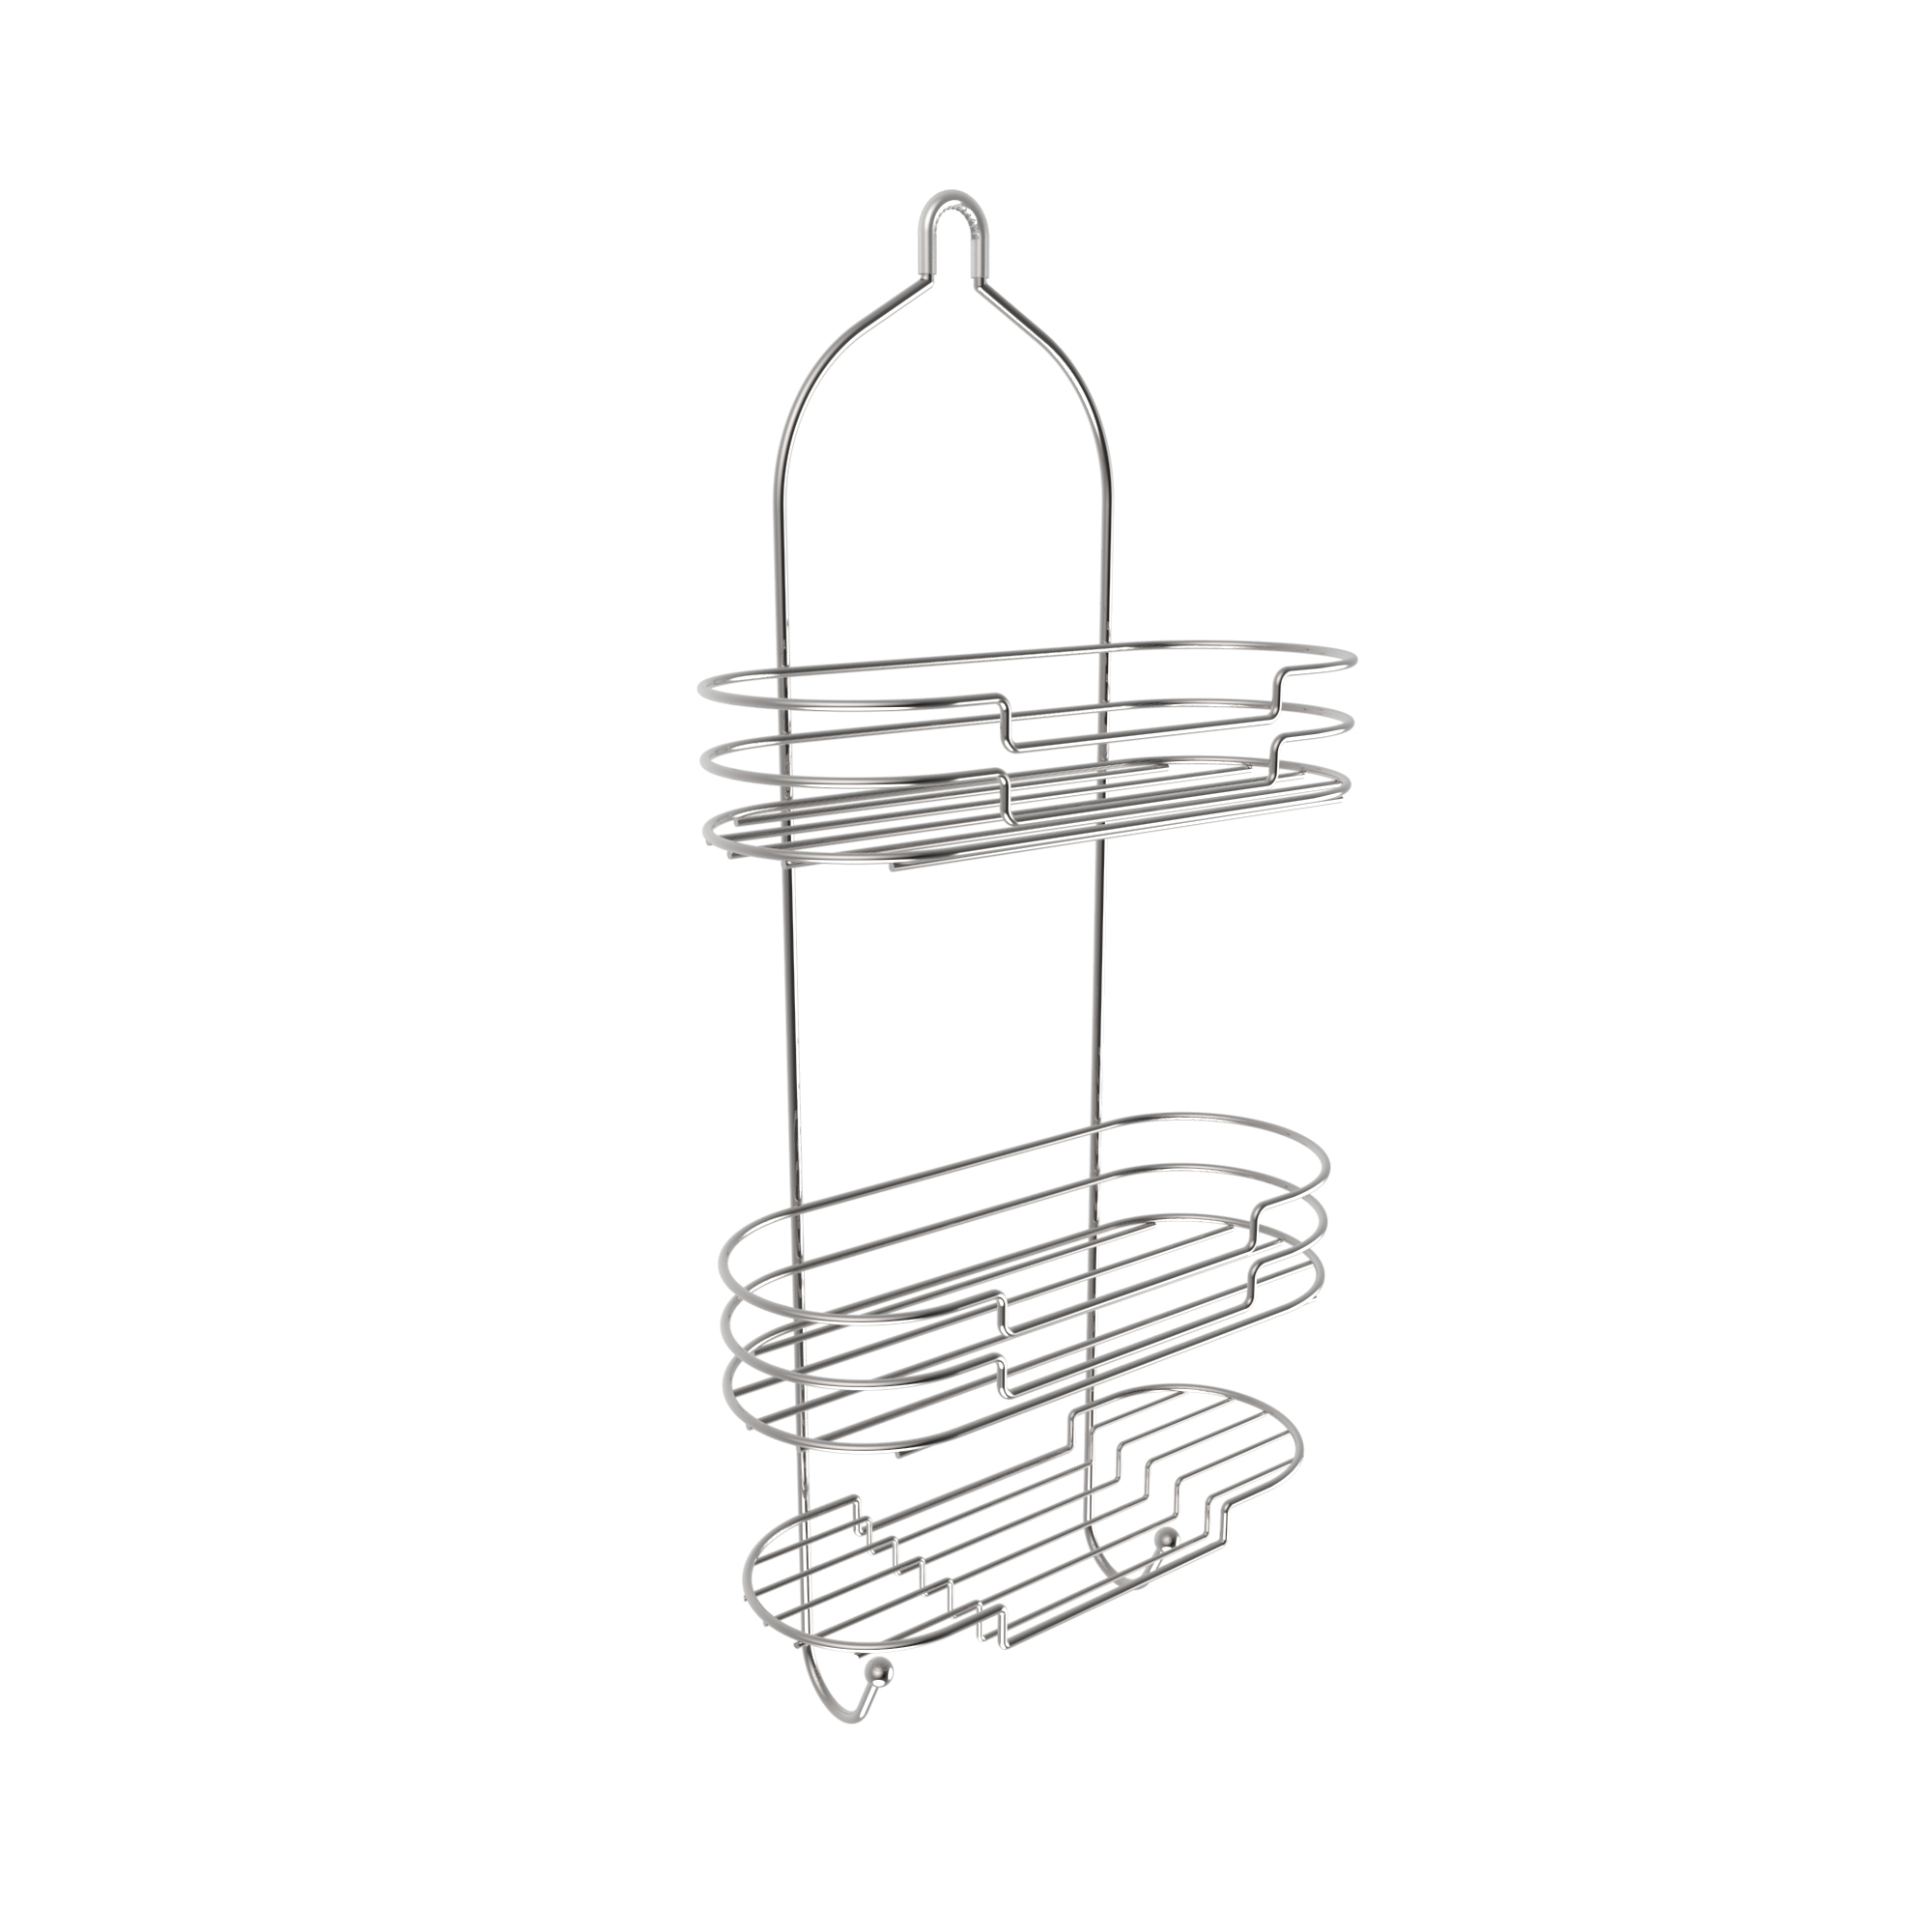 Tall Shower Caddy with Shelves and Hooks- Showerhead Bath Organizer with Non Slip Grip and... by Trademark Global